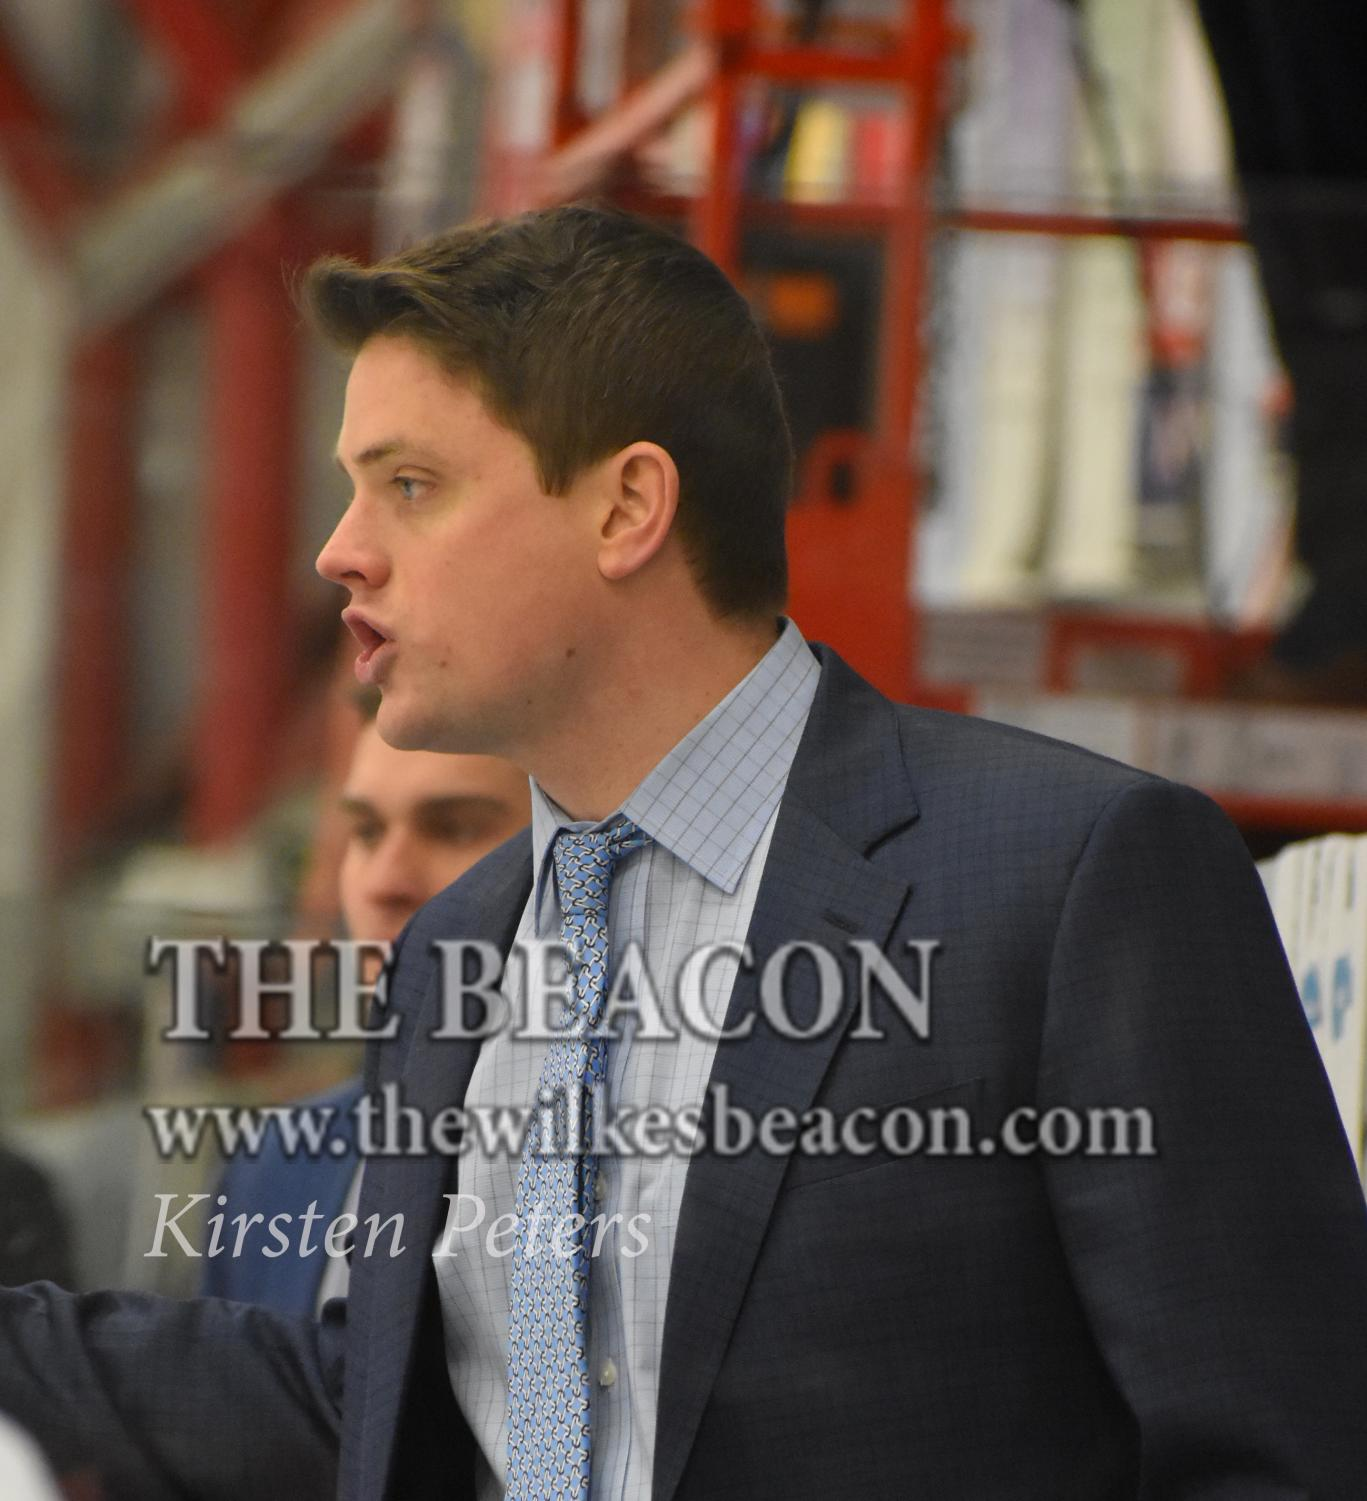 Head coach Brett Riley (pictured above) will depart Wilkes University and begin an assistant coaching job at Colgate University for the 2019-2020 season.